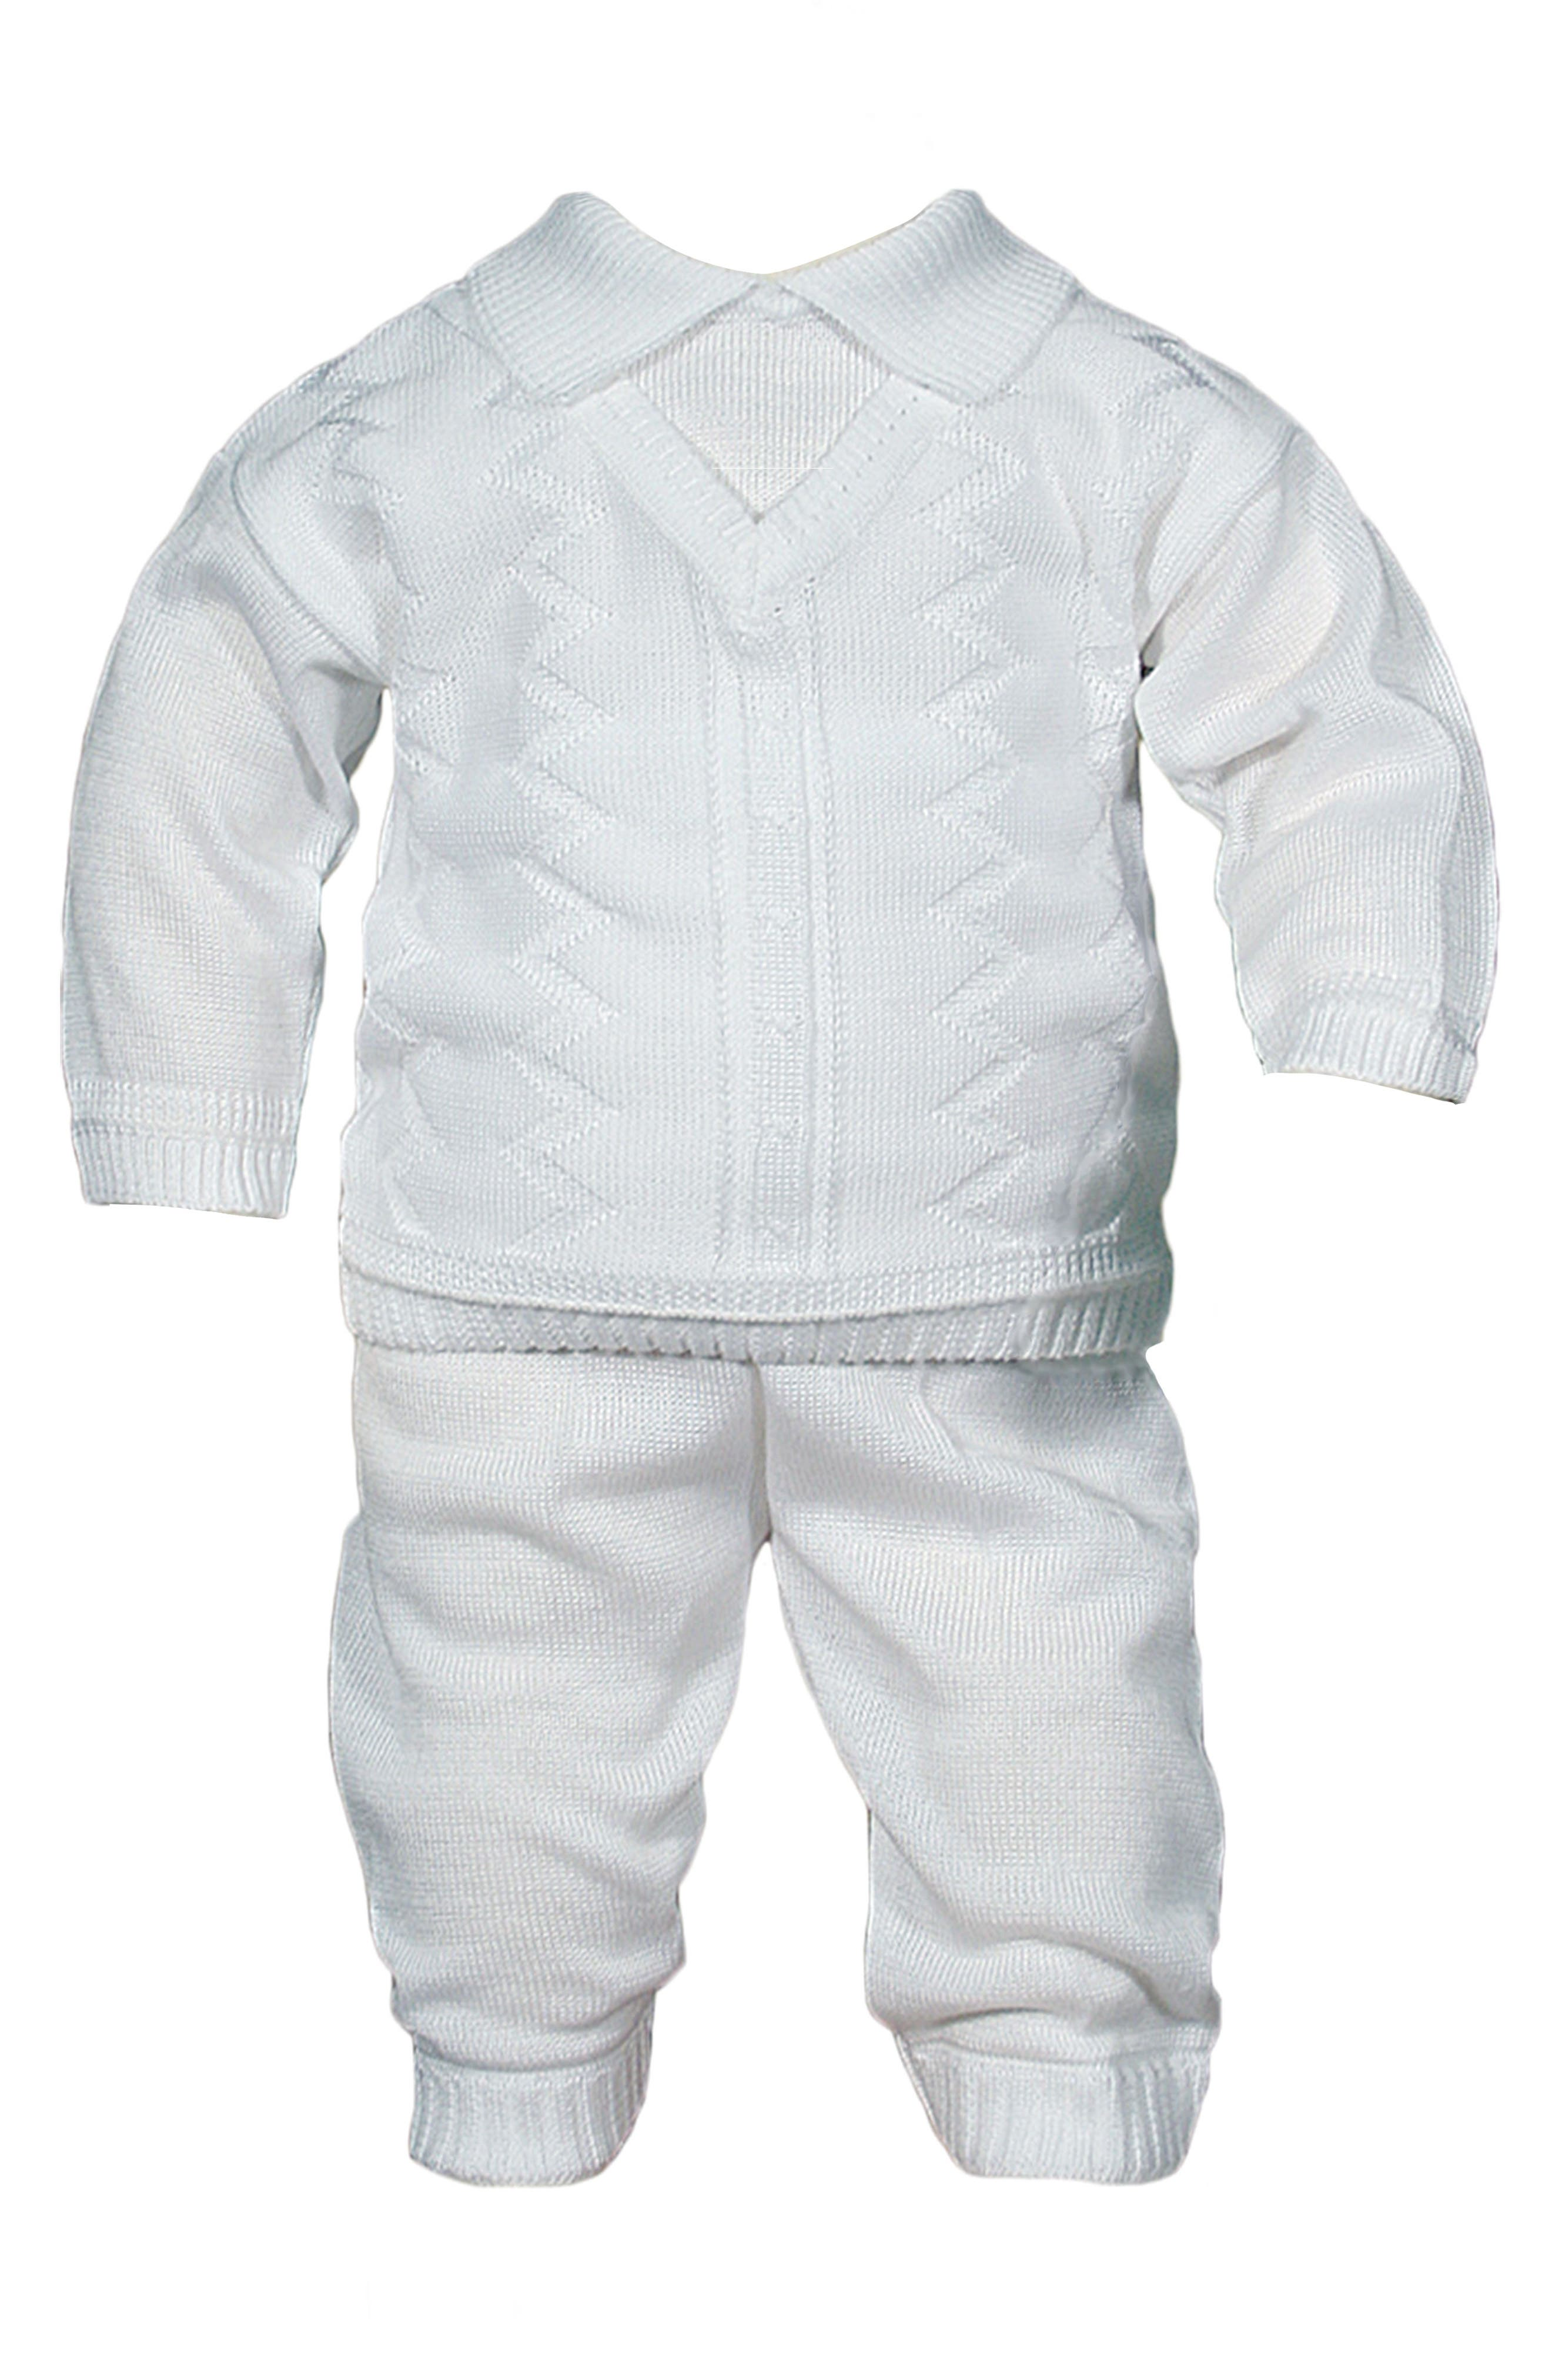 Main Image - Little Things Mean A Lot Knit Shirt & Pants Set (Baby Boys)